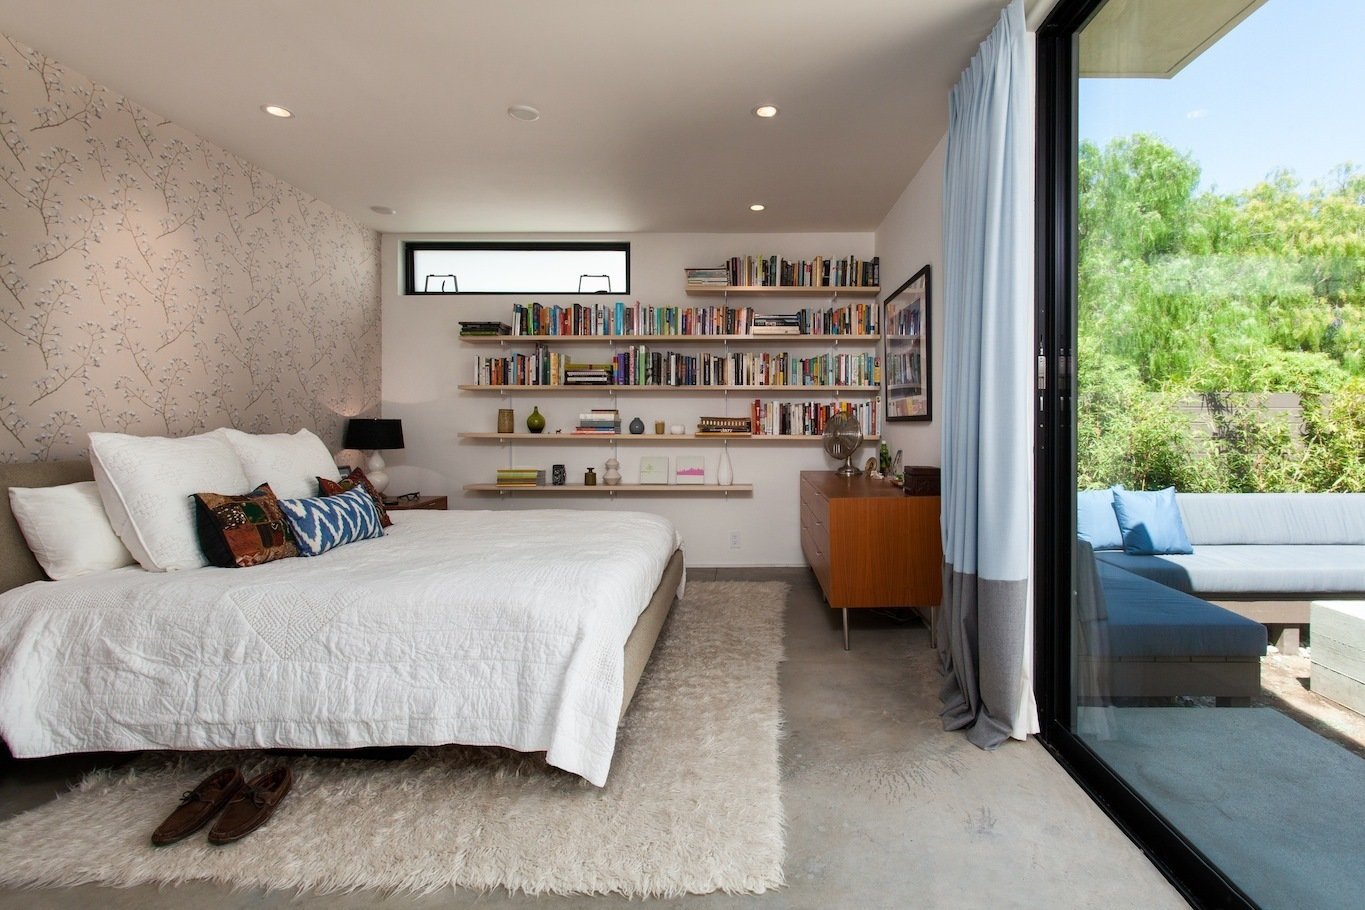 Bedroom at rear yard opens to patio Tagged: Bed, Bookcase, Dresser, Storage, Night Stands, Shelves, Recessed Lighting, Concrete Floor, Awning Window Type, Metal, Doors, Sliding Door Type, and Exterior.  Ashland Residence by Hsu McCullough